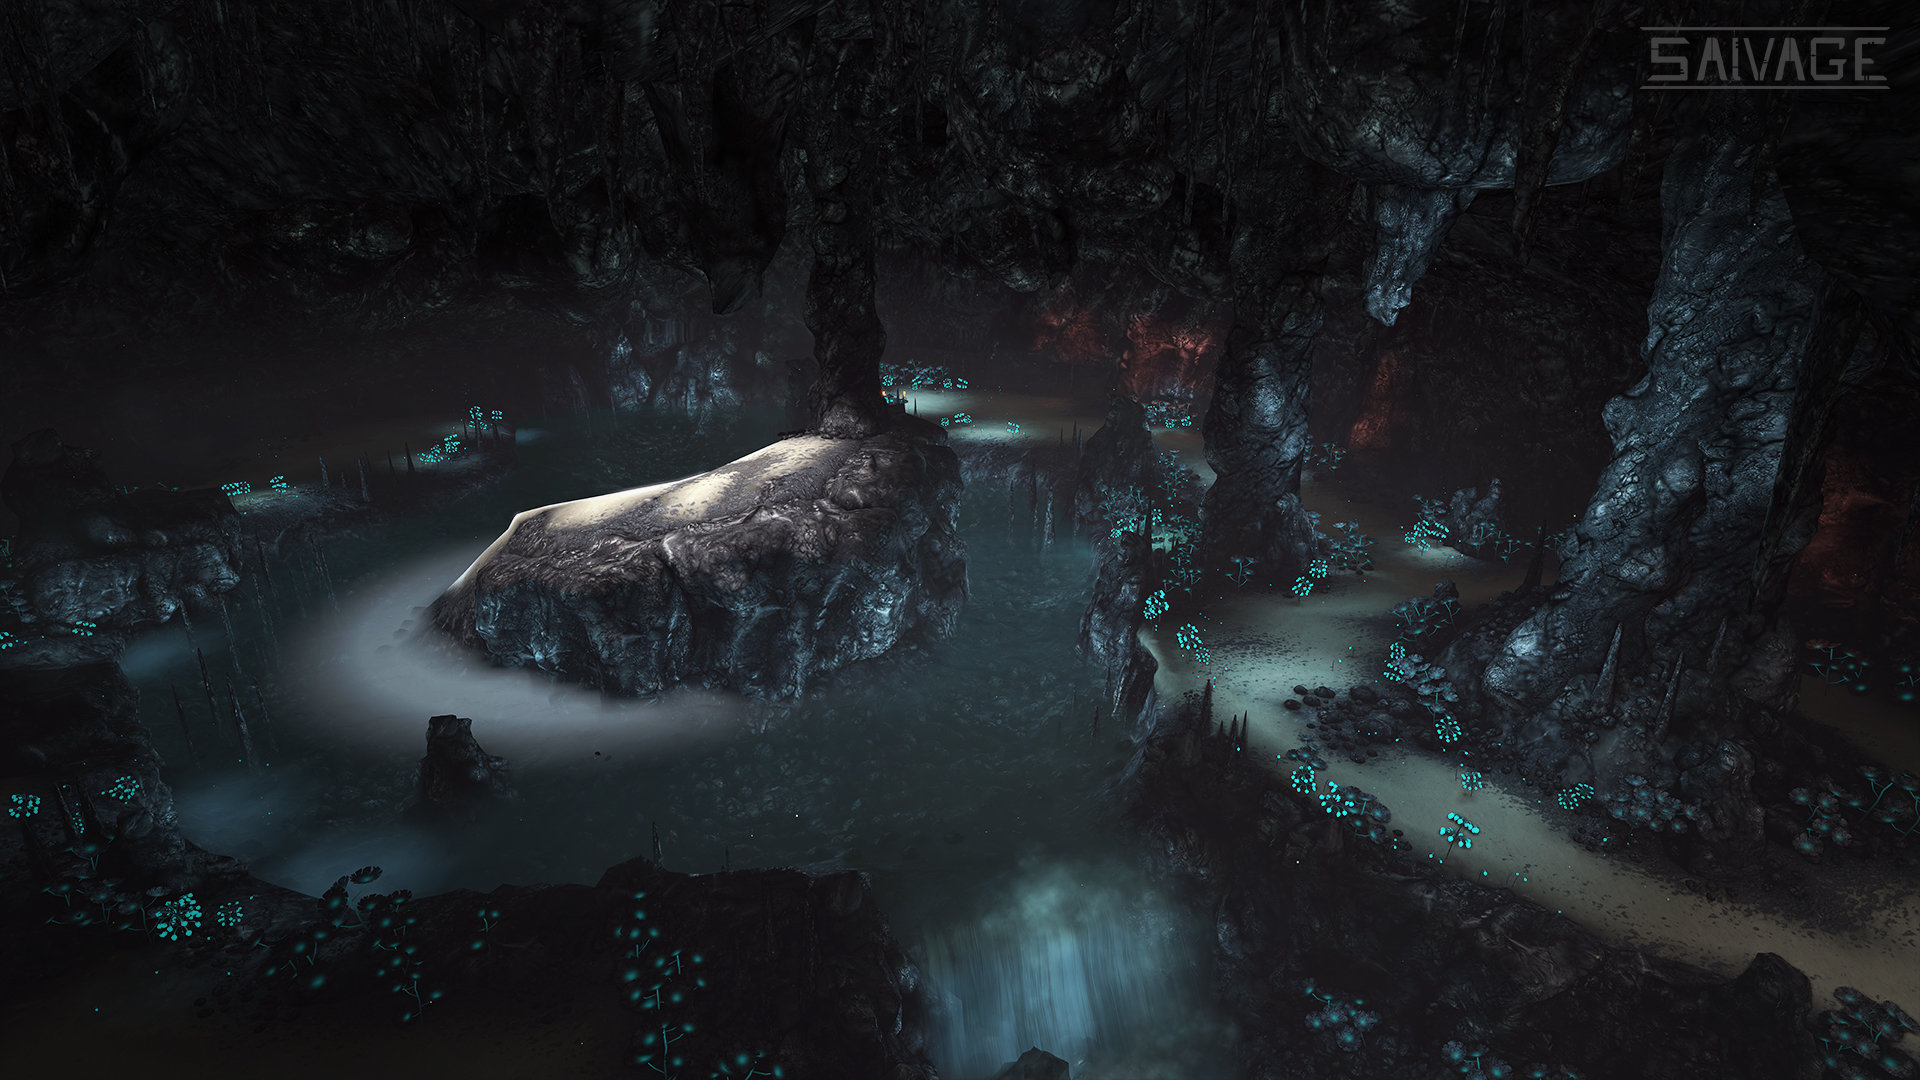 Salvage cave1